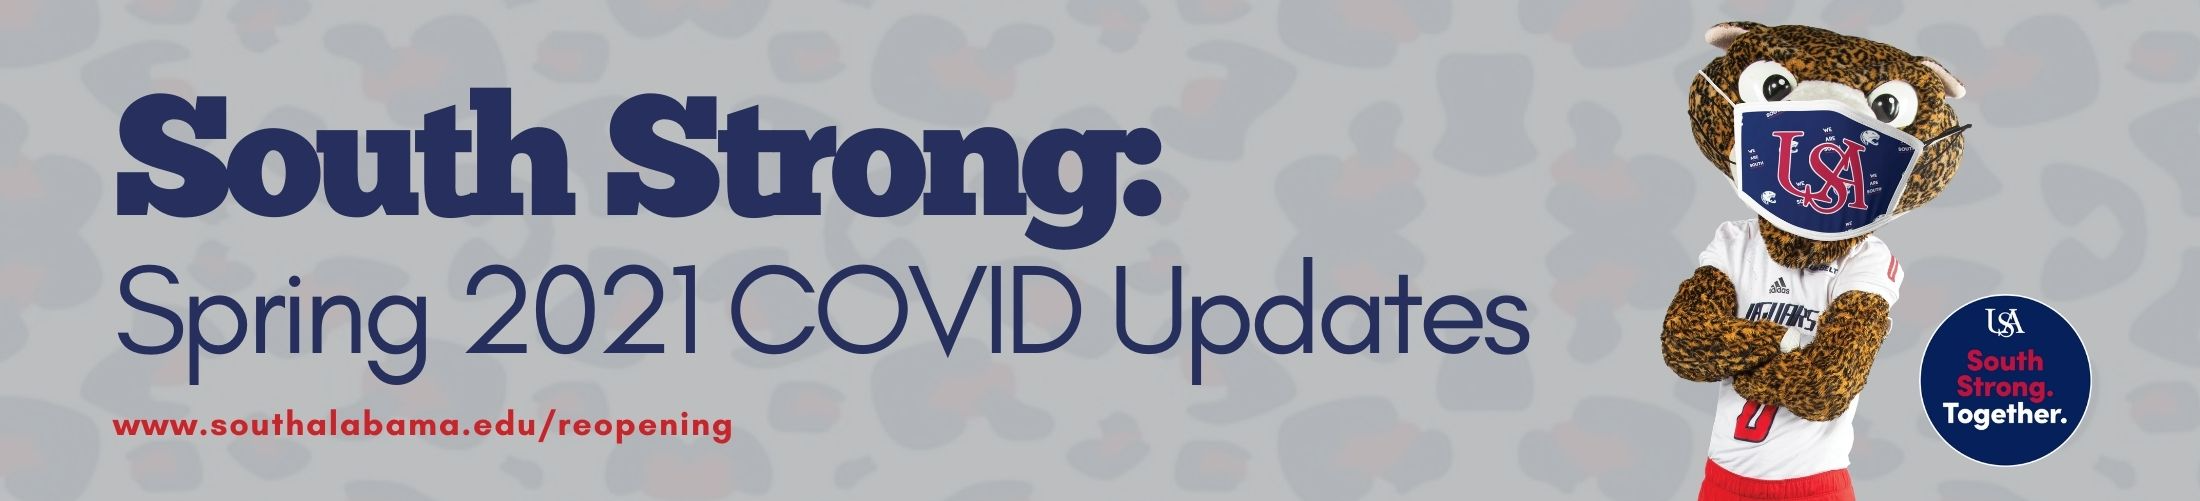 South Strong: Spring 2021 COVID Updates https://www.southalabama.edu/southstrong